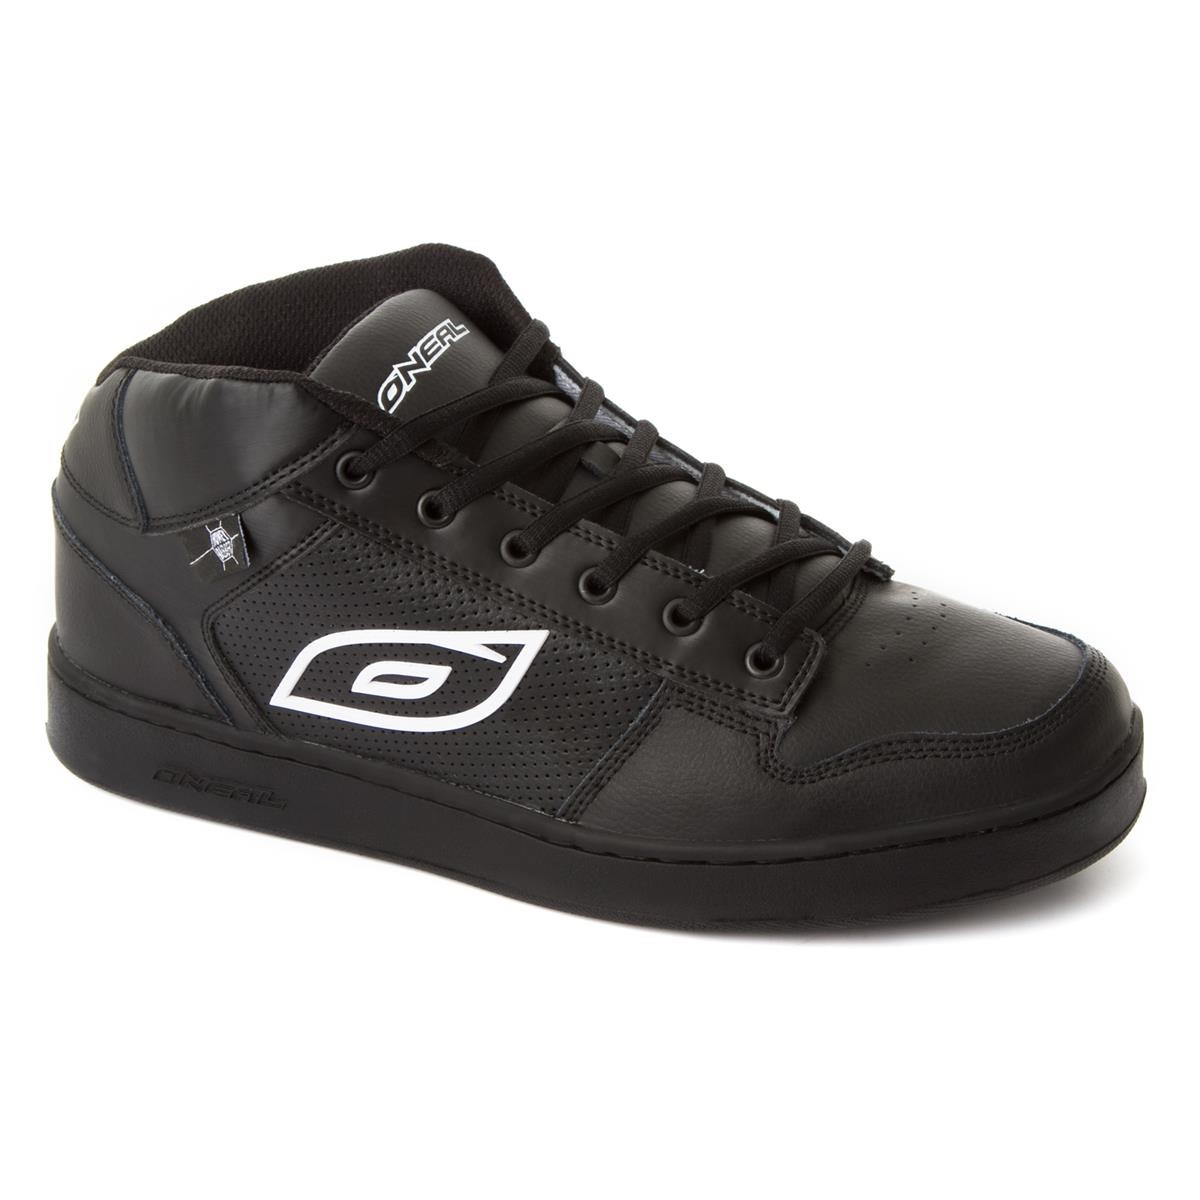 O'Neal Trigger ll Flat Shoe Black 40 Y-3 Sneakers & Tennis basses femme. rOR8TBXSq